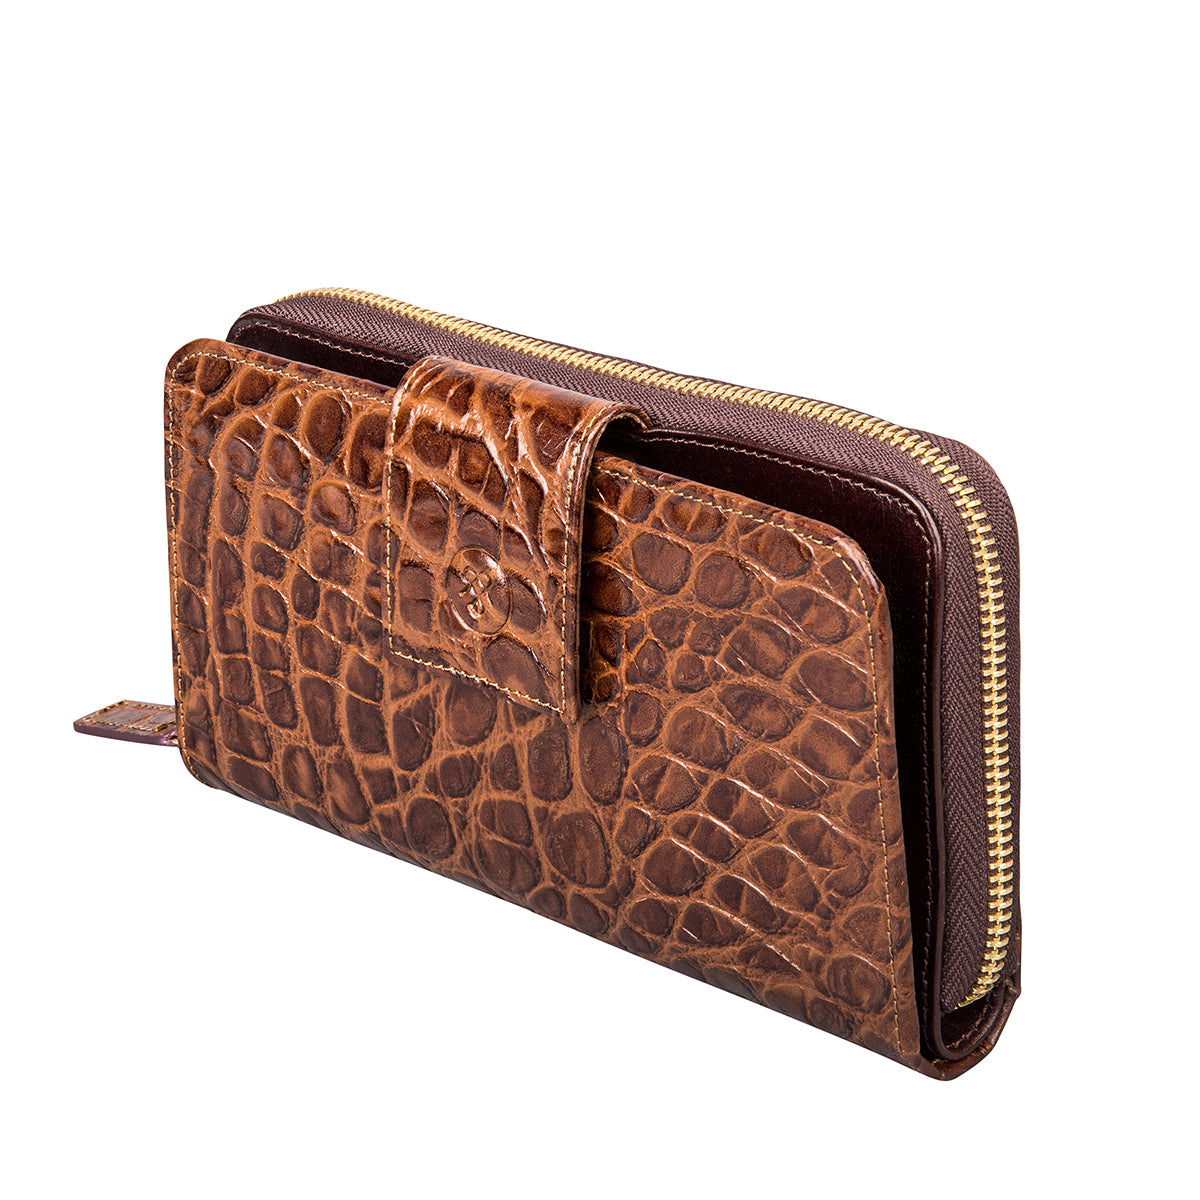 Image 2 of the 'Giorgia' Chocolate Mock Croc Veg-Tanned Leather Zip Purse